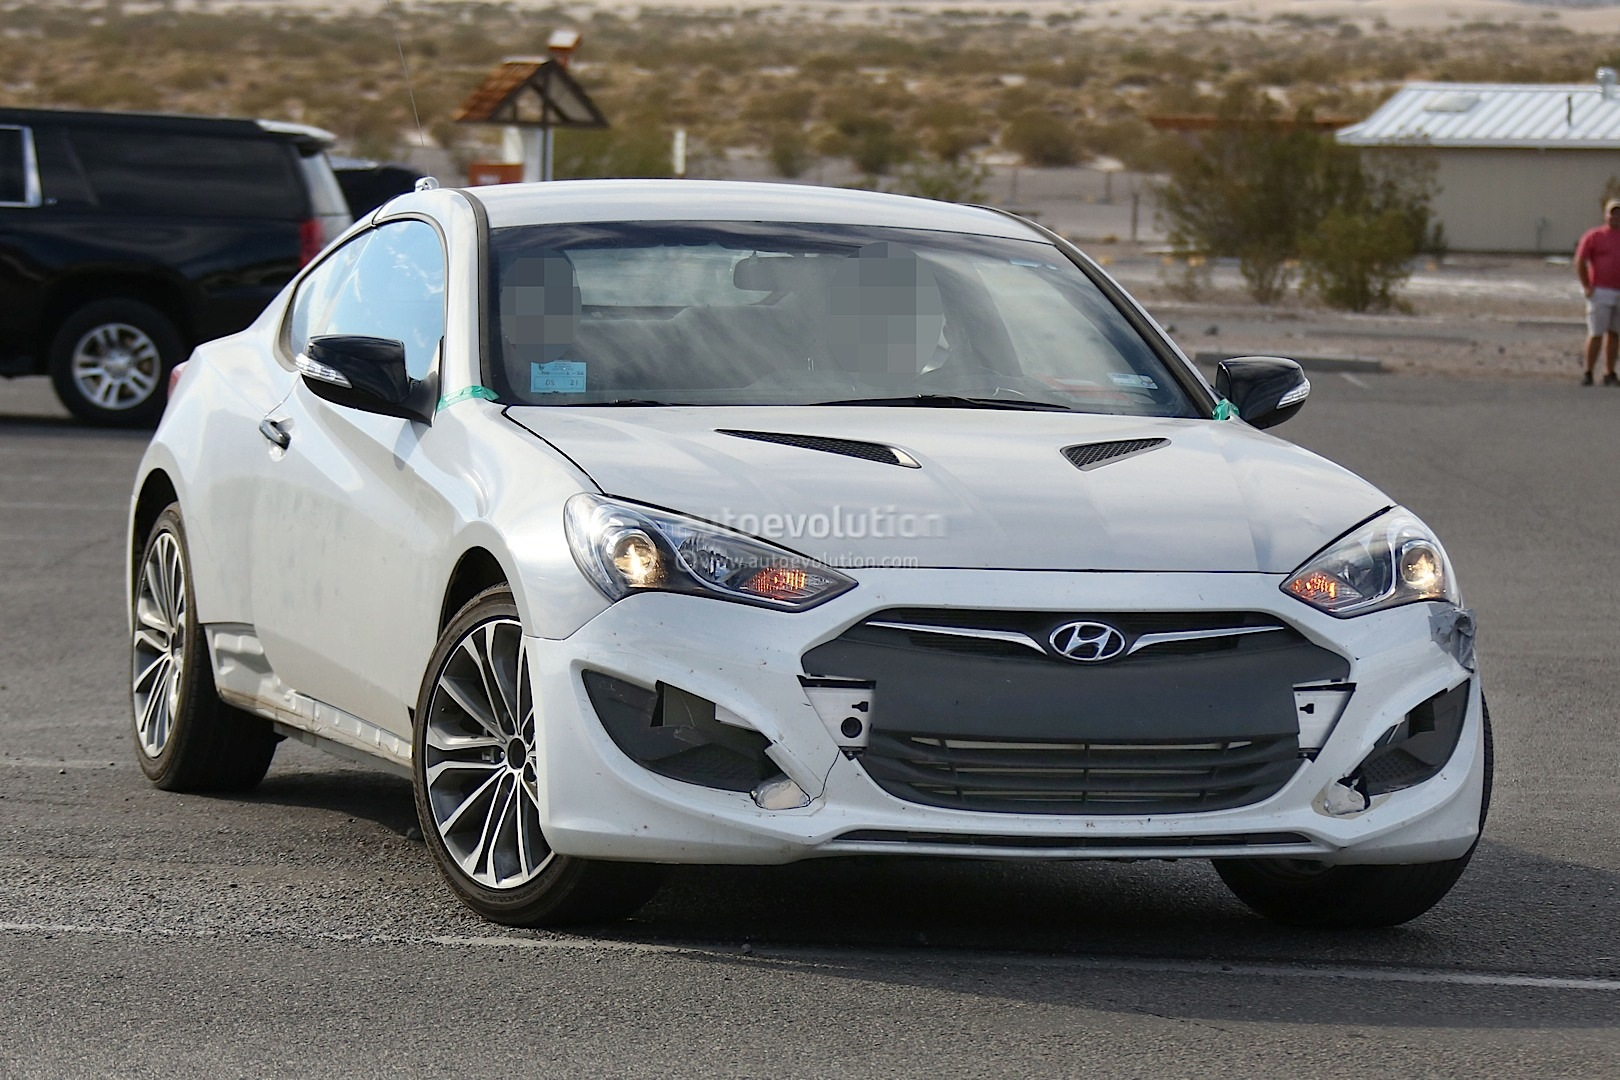 new-2017-hyundai-genesis-coupe-spied-for-the-first-time_4.jpg